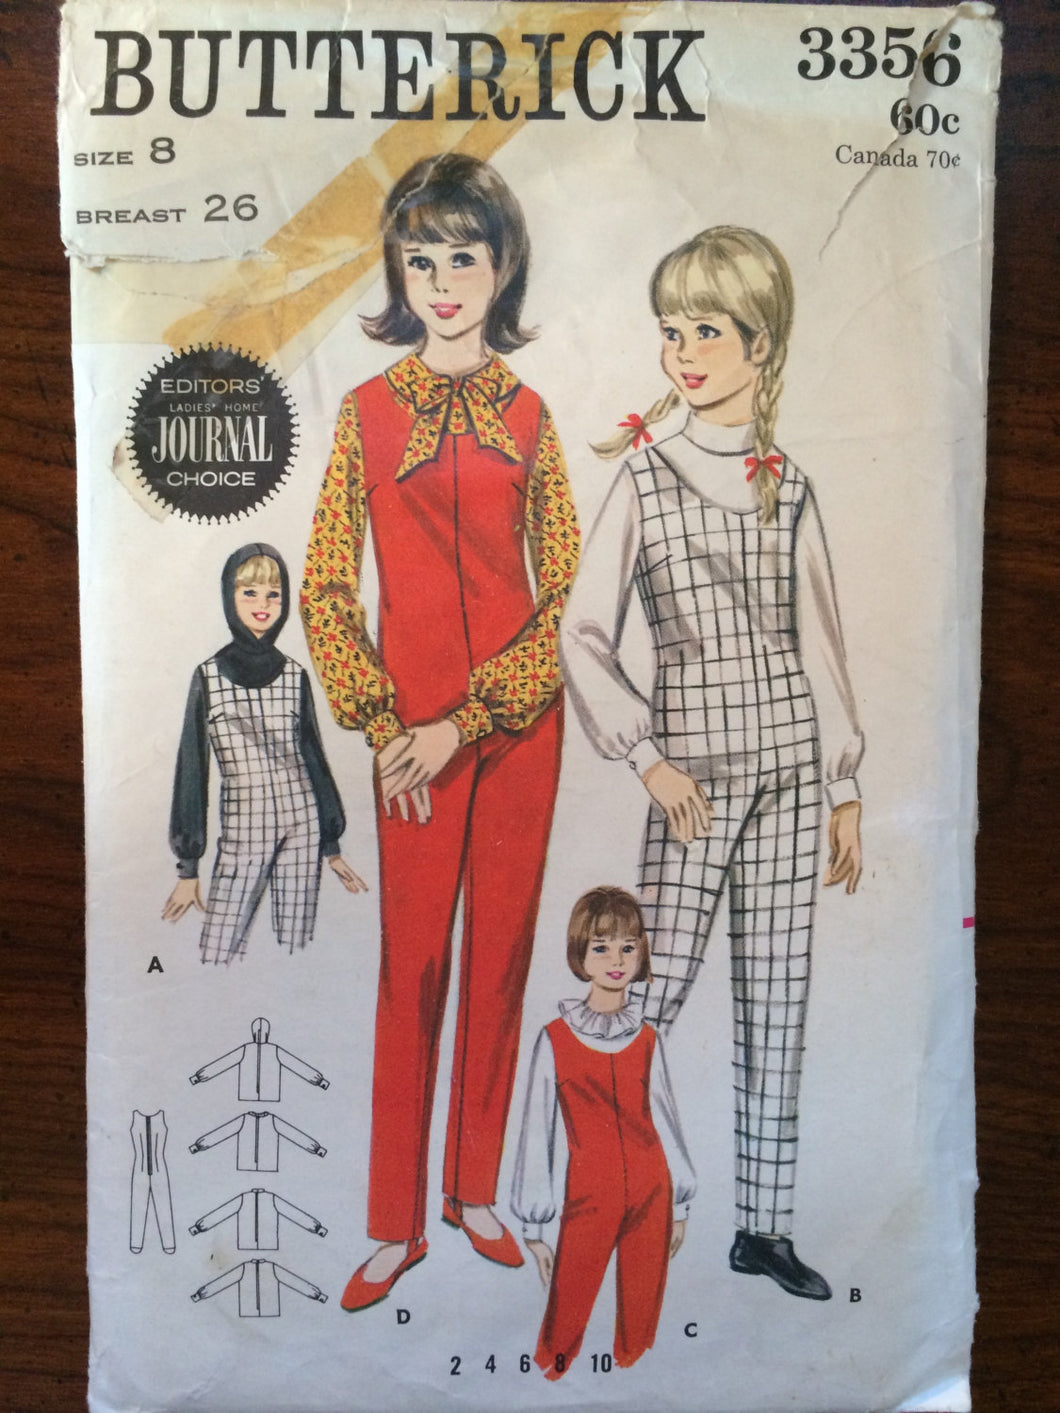 1960s Butterick Girl's Jumpusit and Blouse Pattern #3356 Sz 8 Bust 26